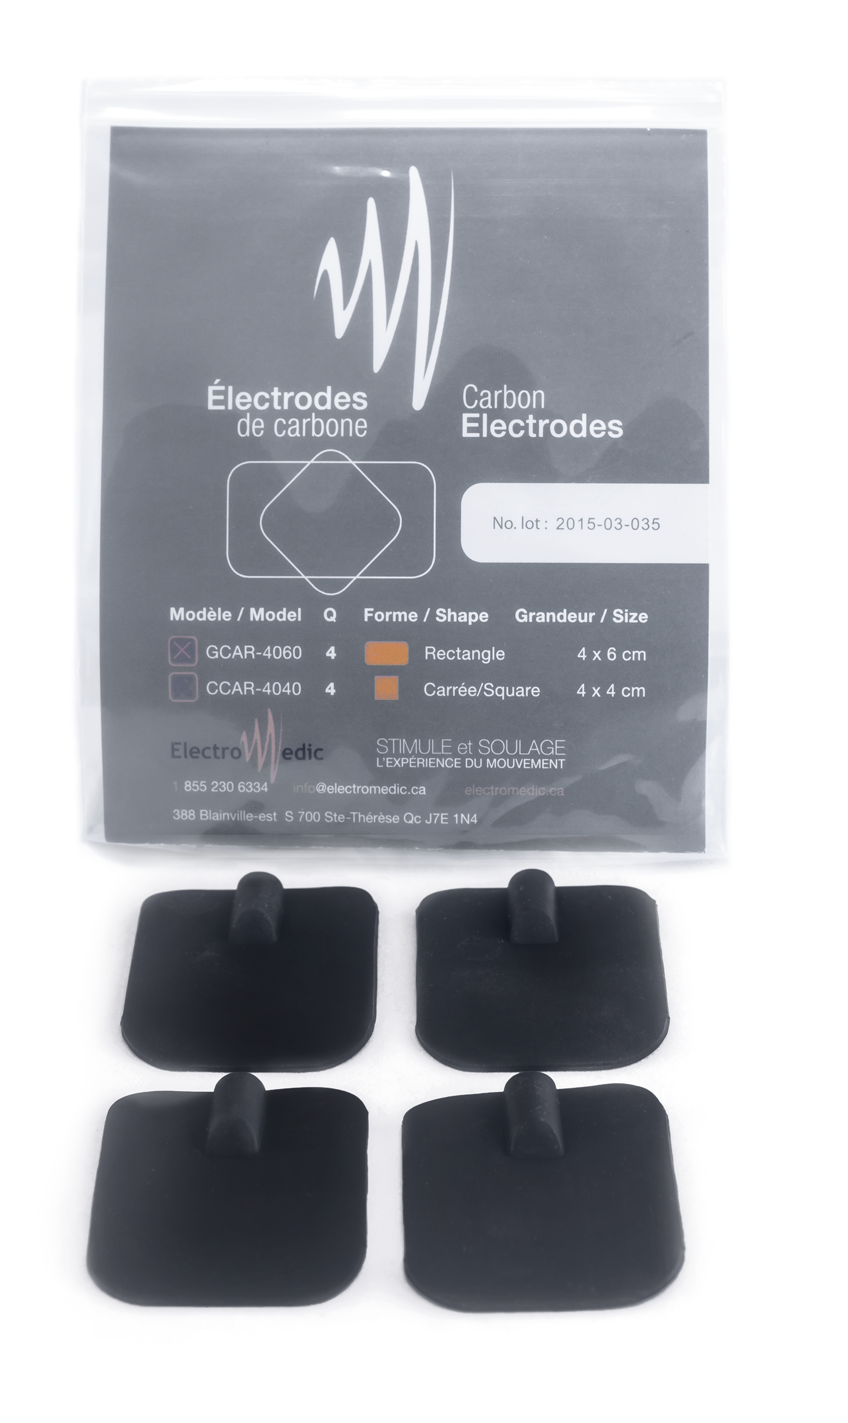 products-rectangular-carbon-electrodes-pro-carbon